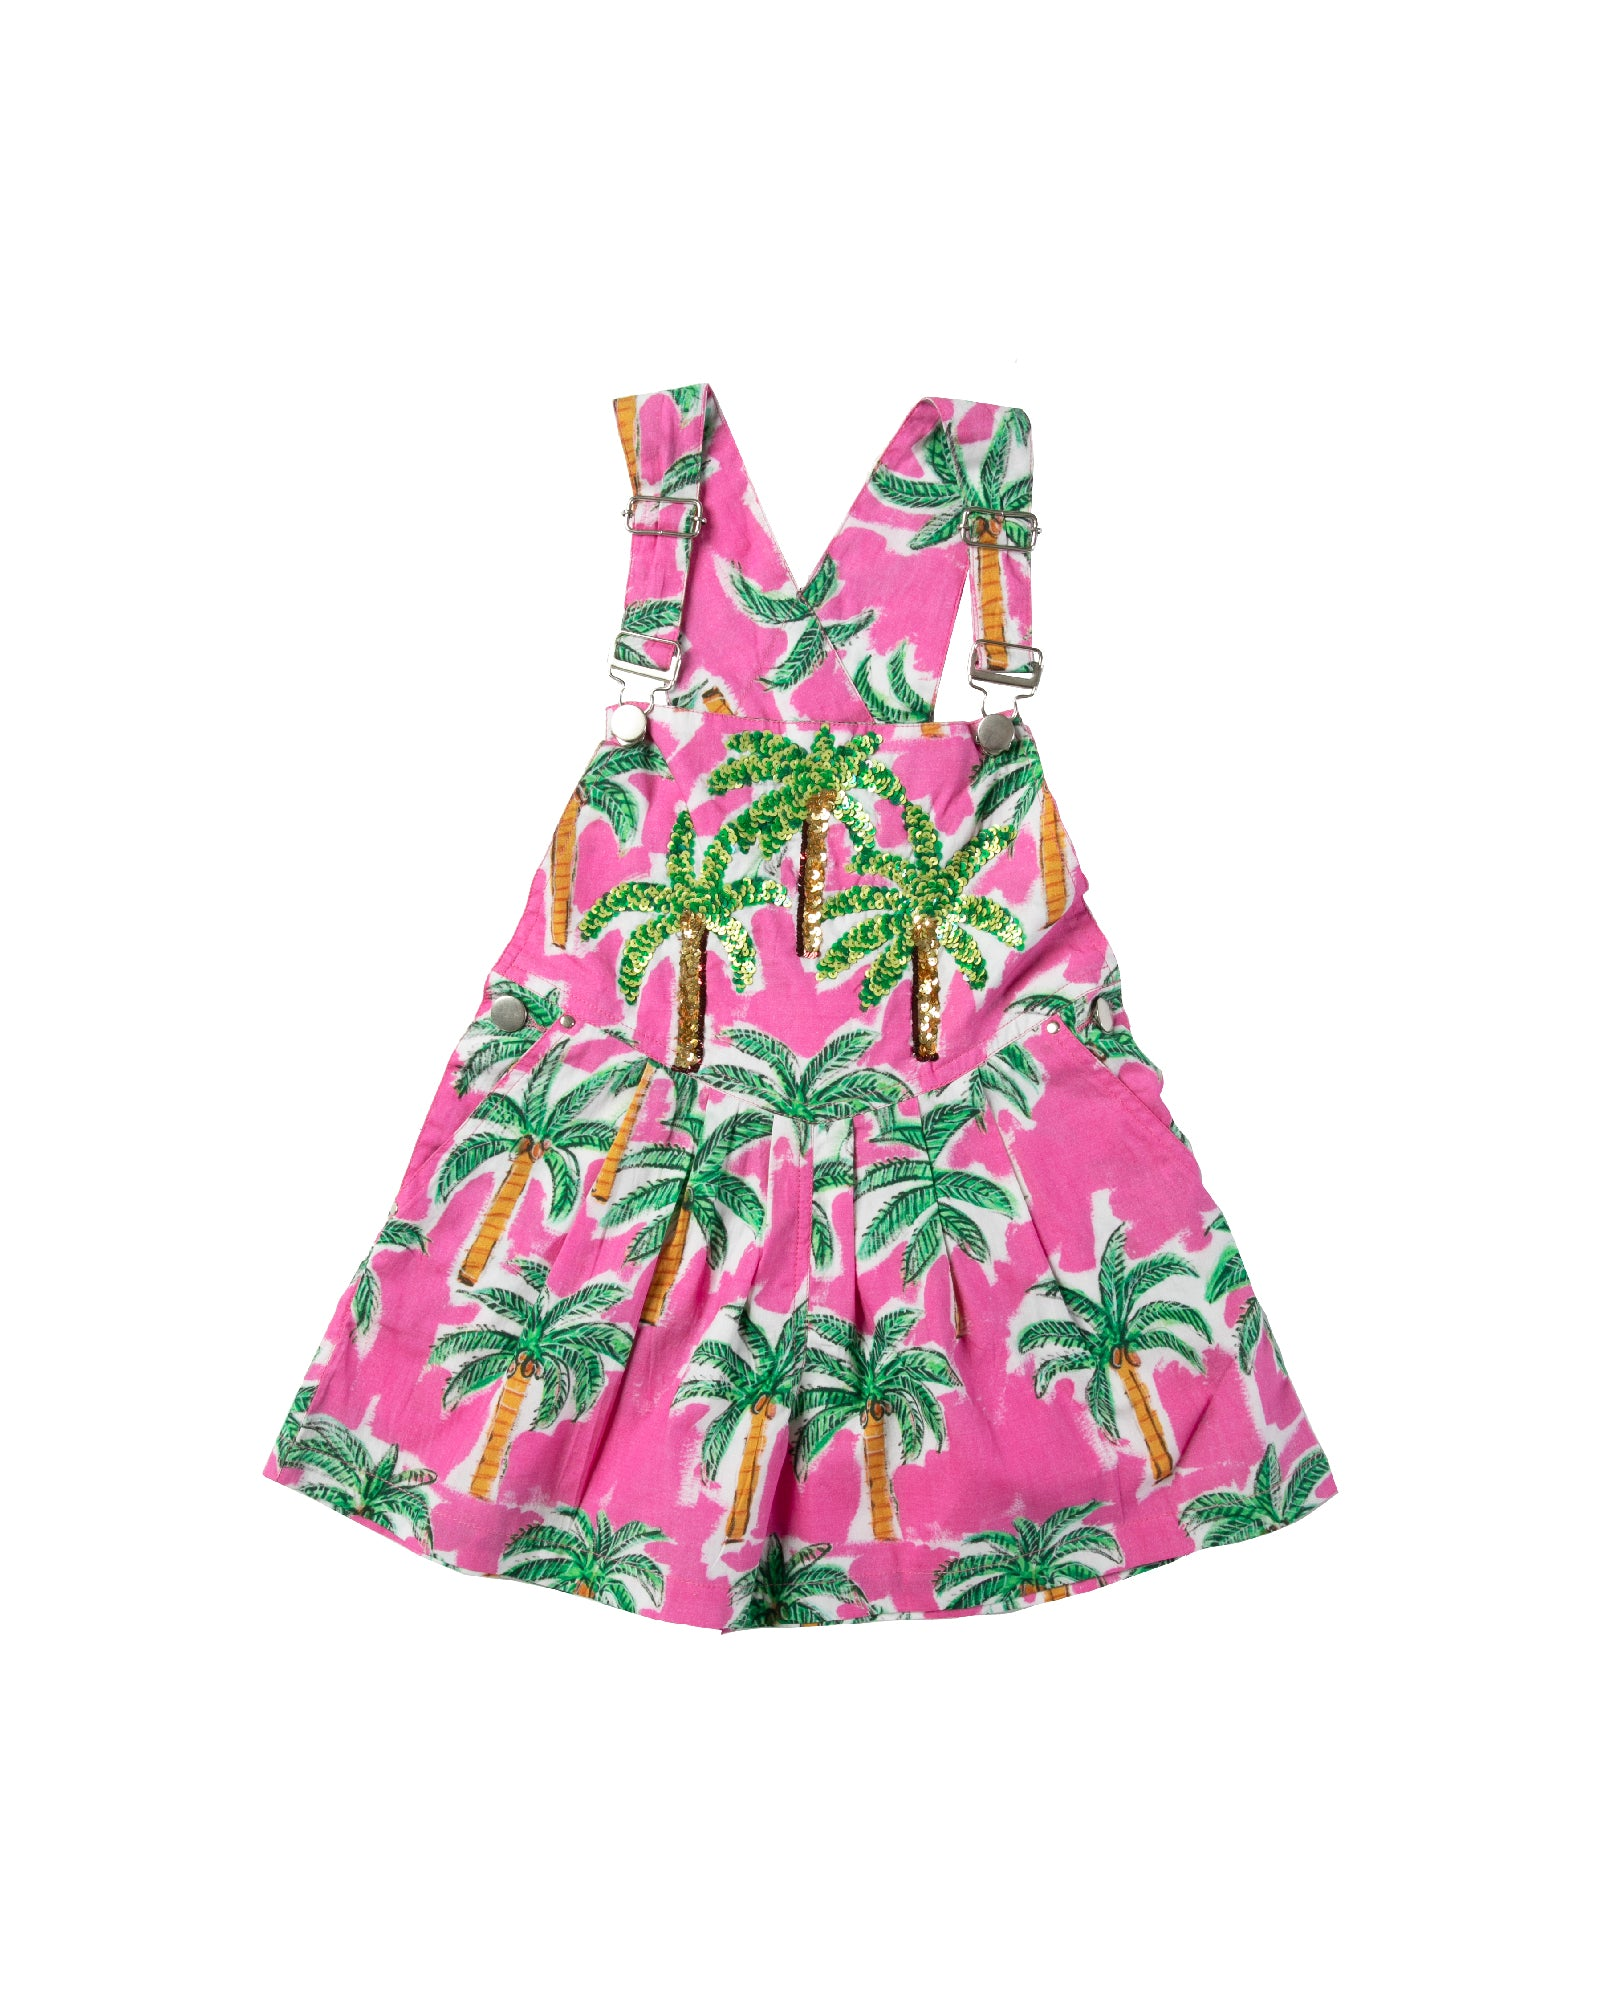 The Hot Pink Palm Kids Overalls by Bonita Bambino - FRONT